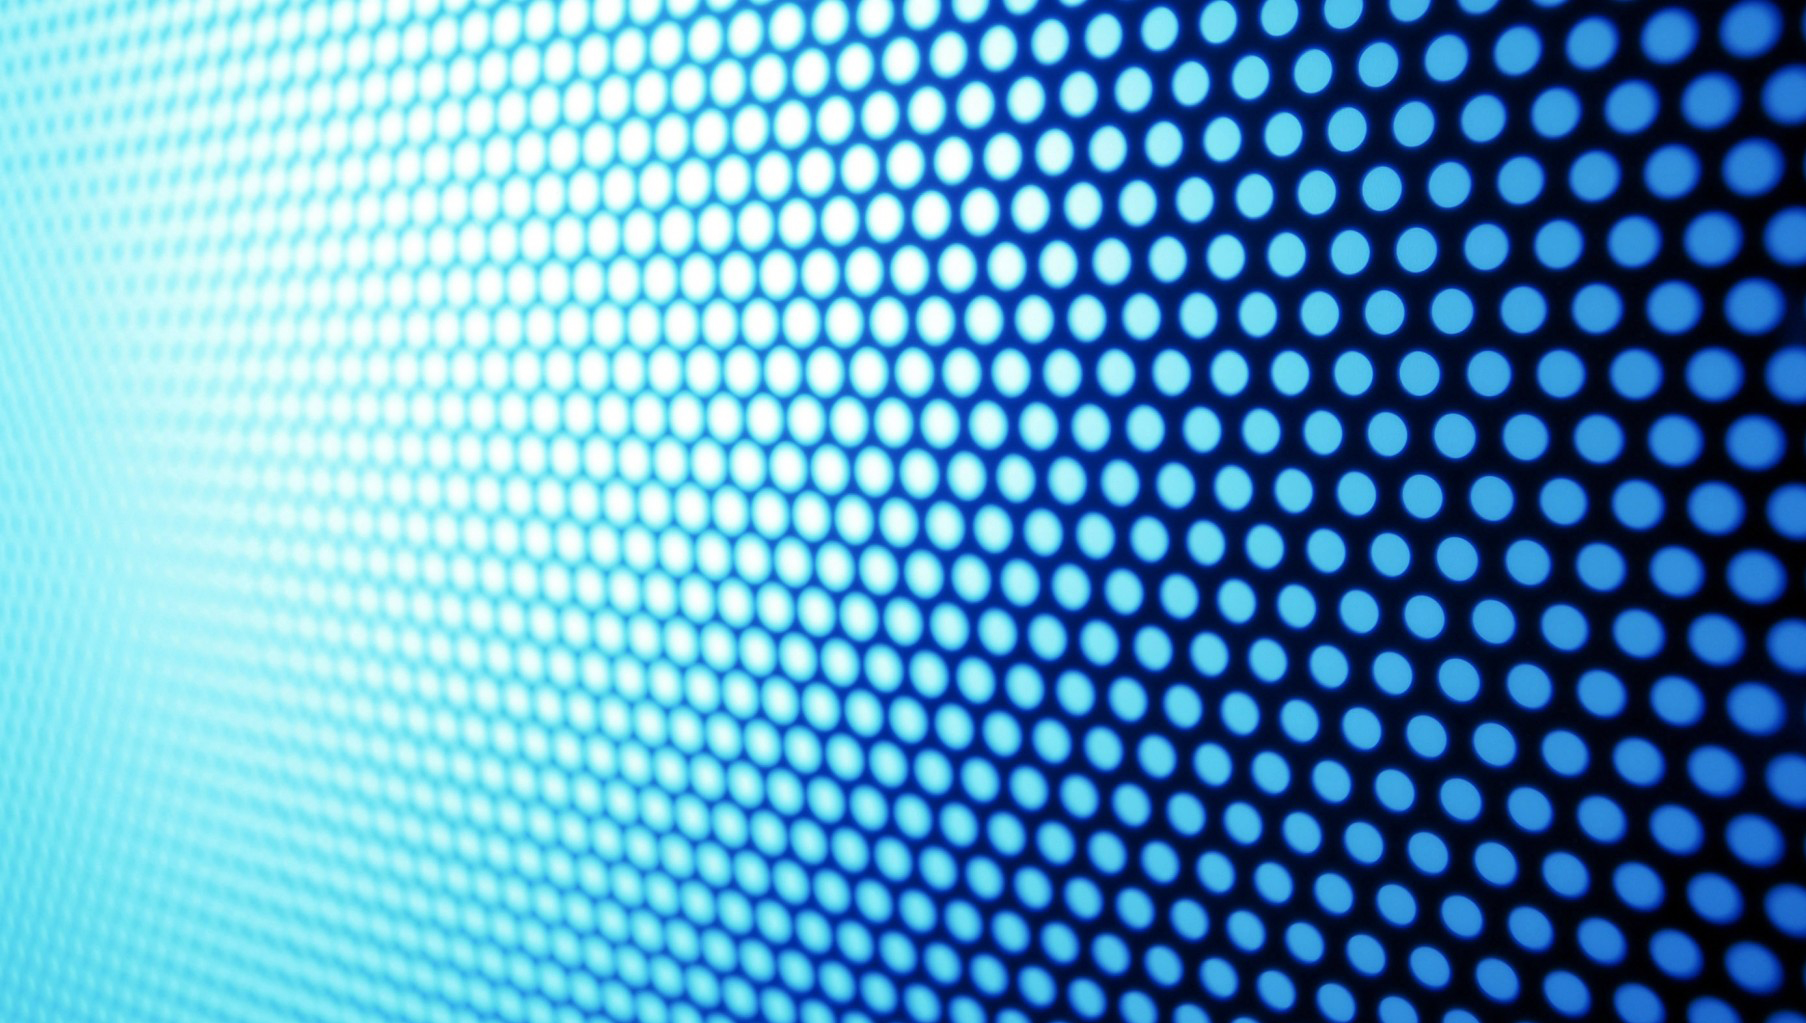 blue-background-of-dots1